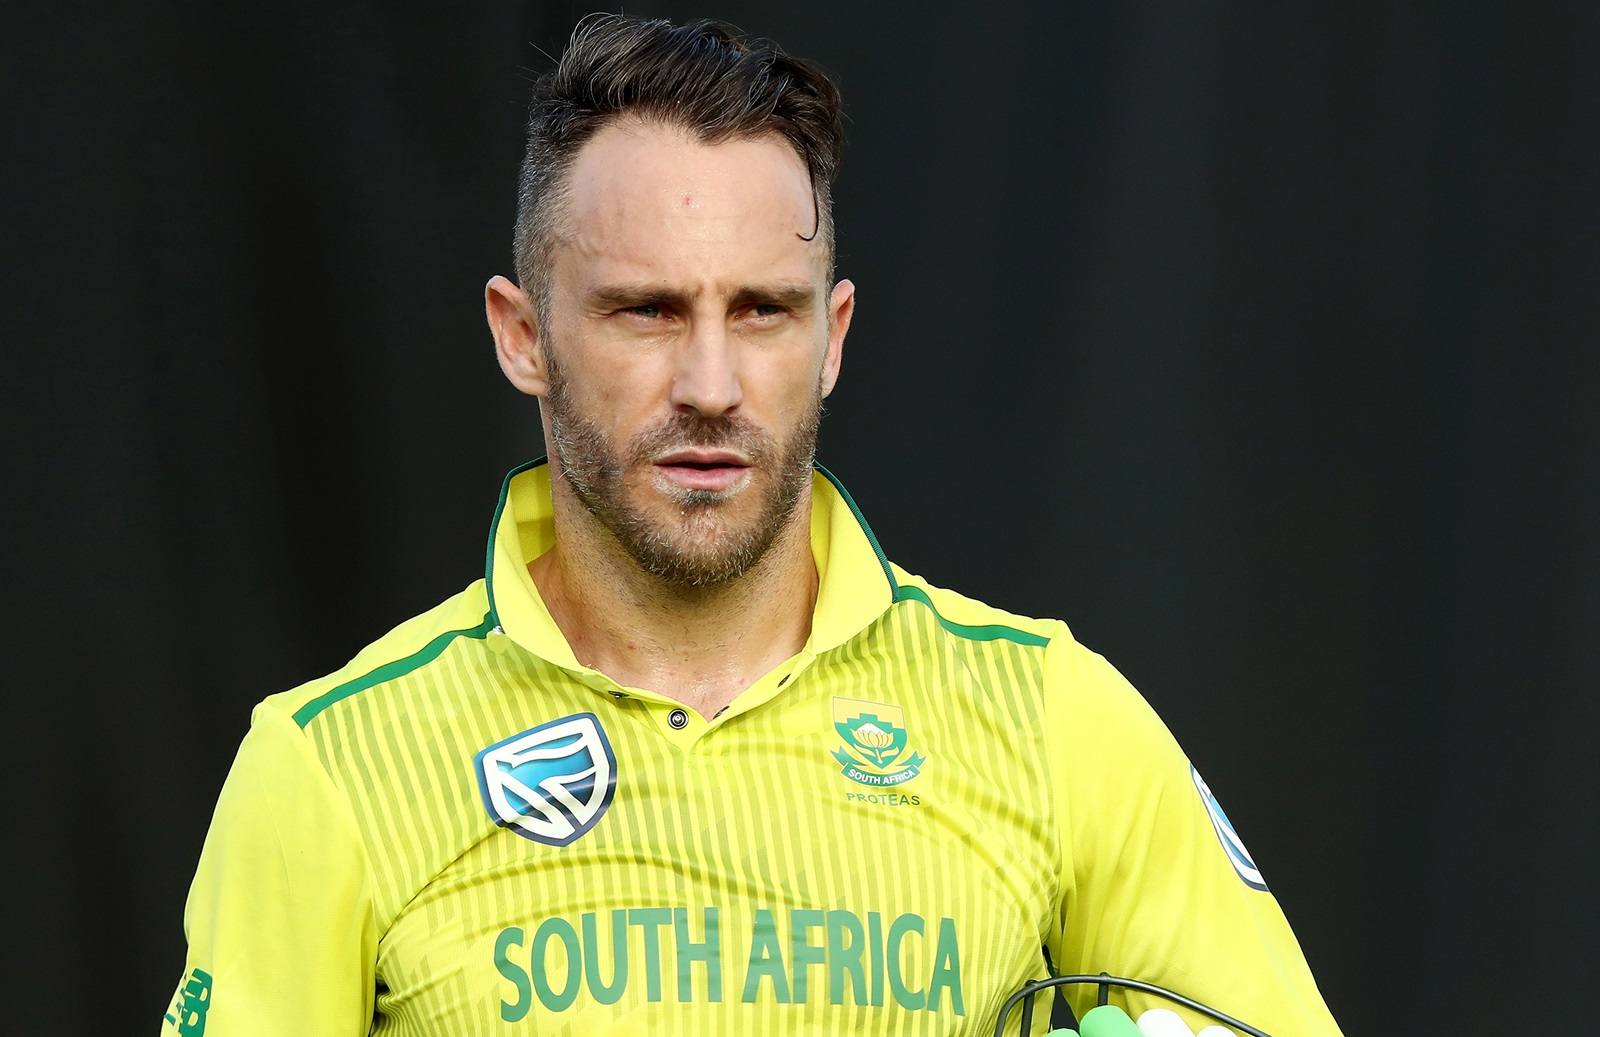 Faf du Plessis has been a brilliant captain and a player | Image Source: cricket.com.au